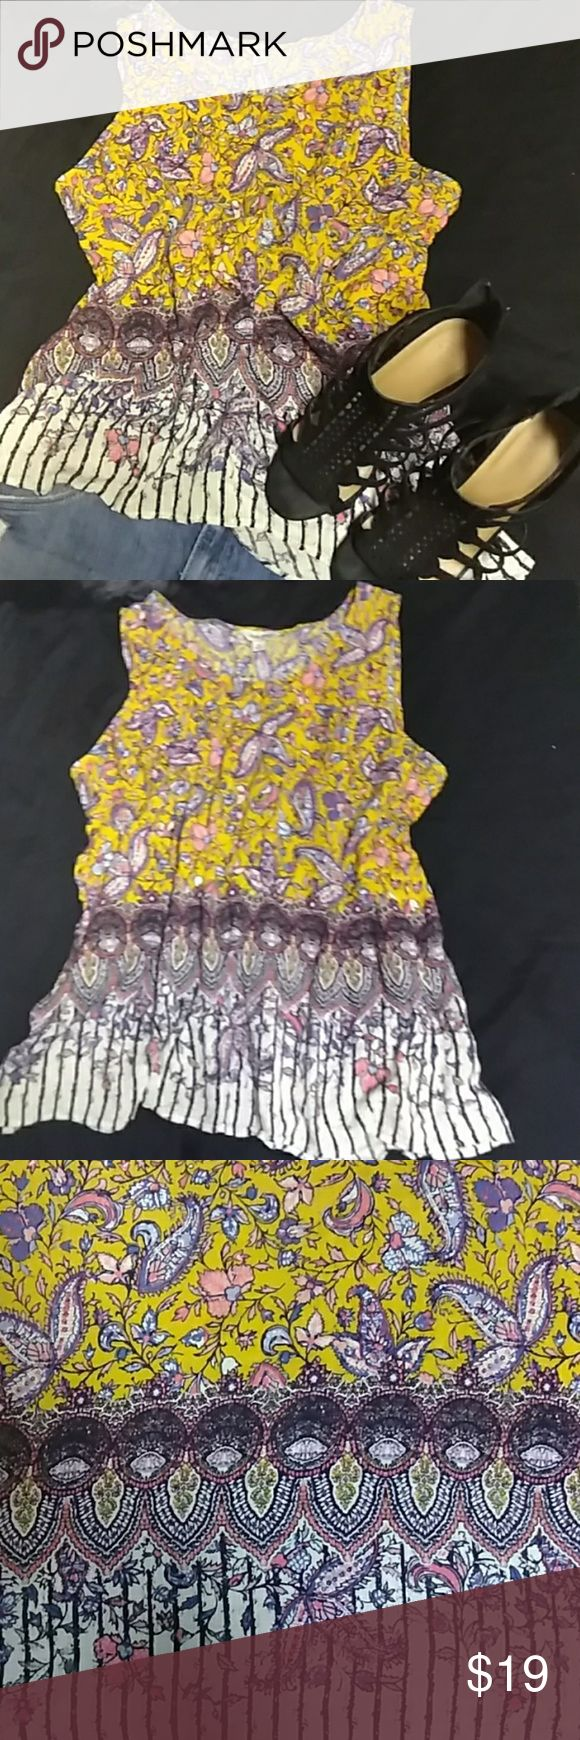 Lucky Brand Boho Fly Away Back Tank XL. Lucky Brand Boho Fly Away Back Tank XL. This Tank Is A Stand Out Piece And Would Look Amazing Indigo Blue Shoes. Perfect For All Seasons. In Winter And Fall Pair With Jeans And A Fly Away Sweater Or Jacket. In The Spring And Summer Style With A Denim Mini Skirt Or Shorts.This Would Be A StandOut Addition To Your Wardrobe. Worn Once. Excellent Condition. Lucky Brand Tops Tank Tops